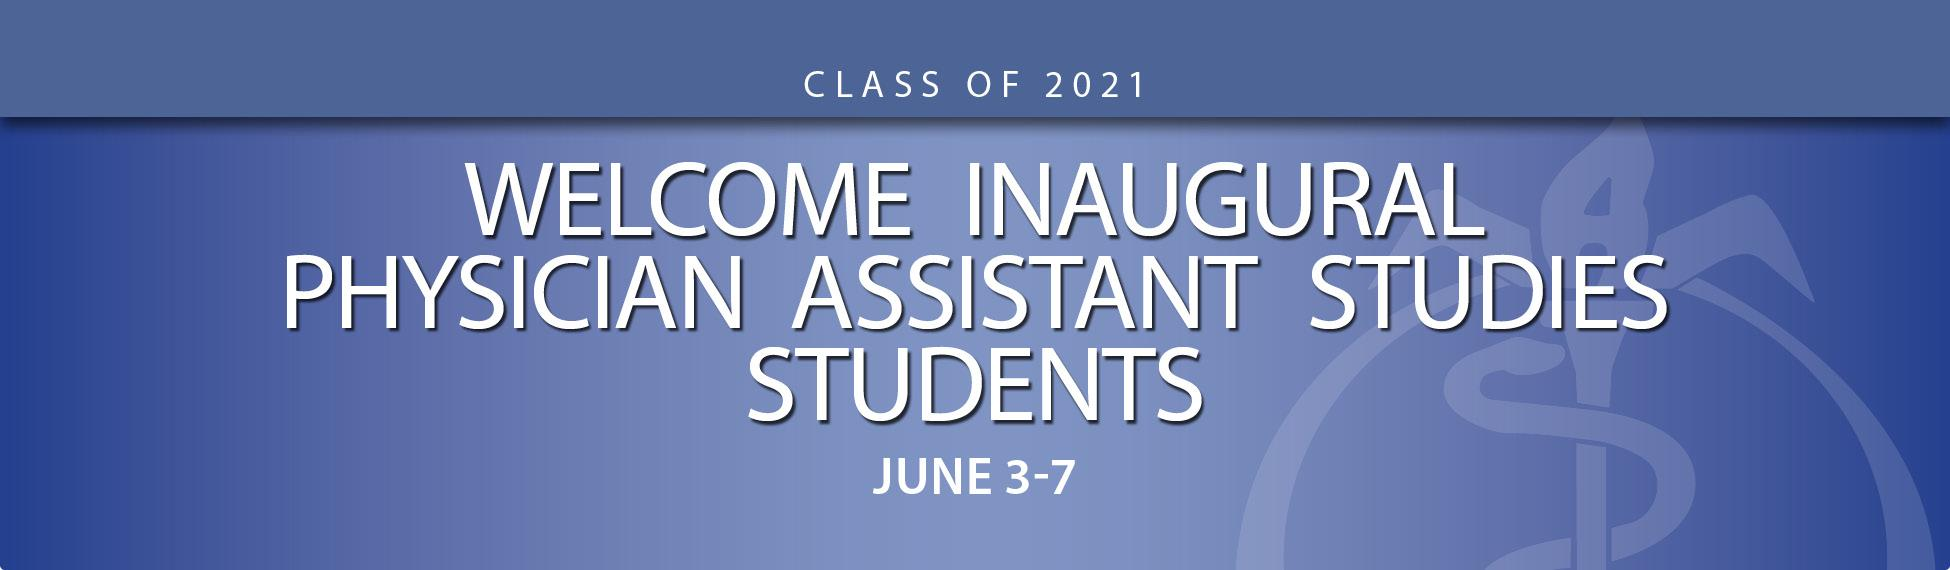 Welcome Inaugural Physician Assistant Studies Students June 3-7